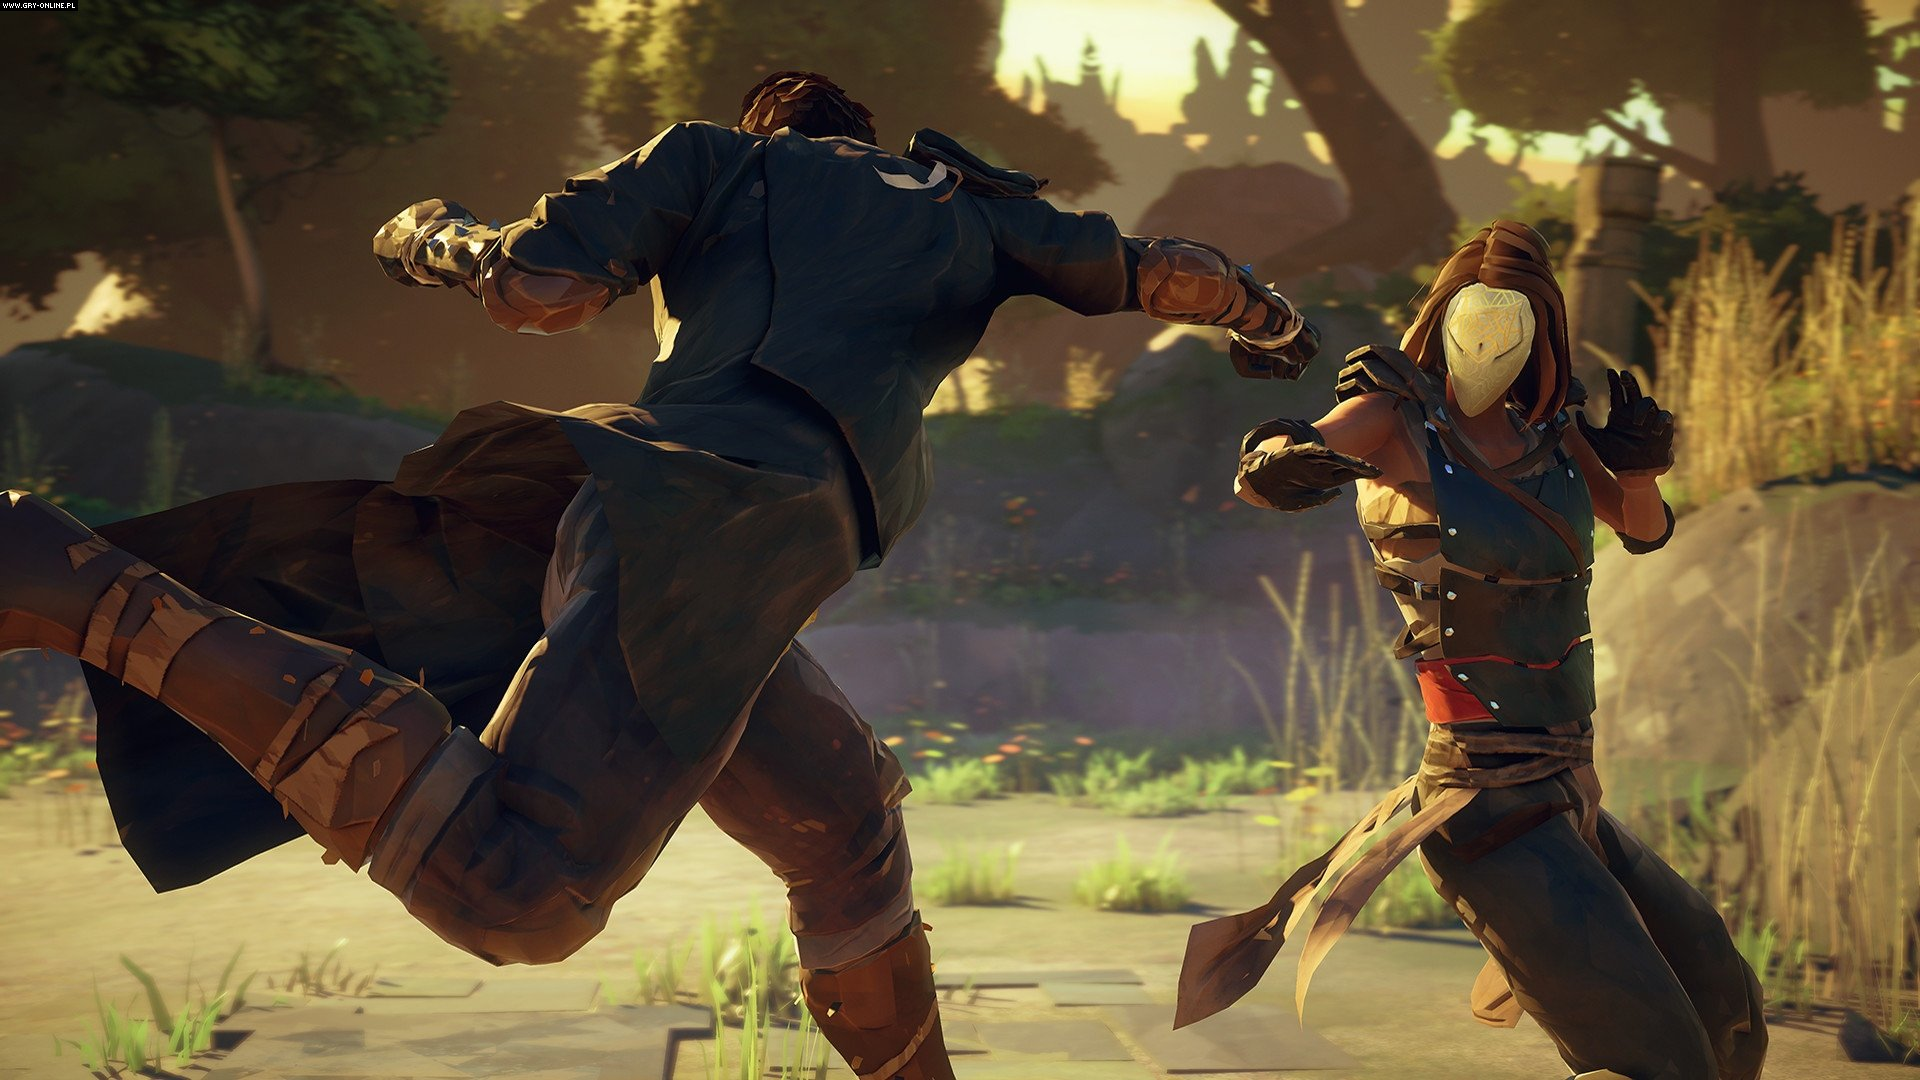 Absolver PC, PS4, XONE Games Image 6/6, Sloclap, Devolver Digital